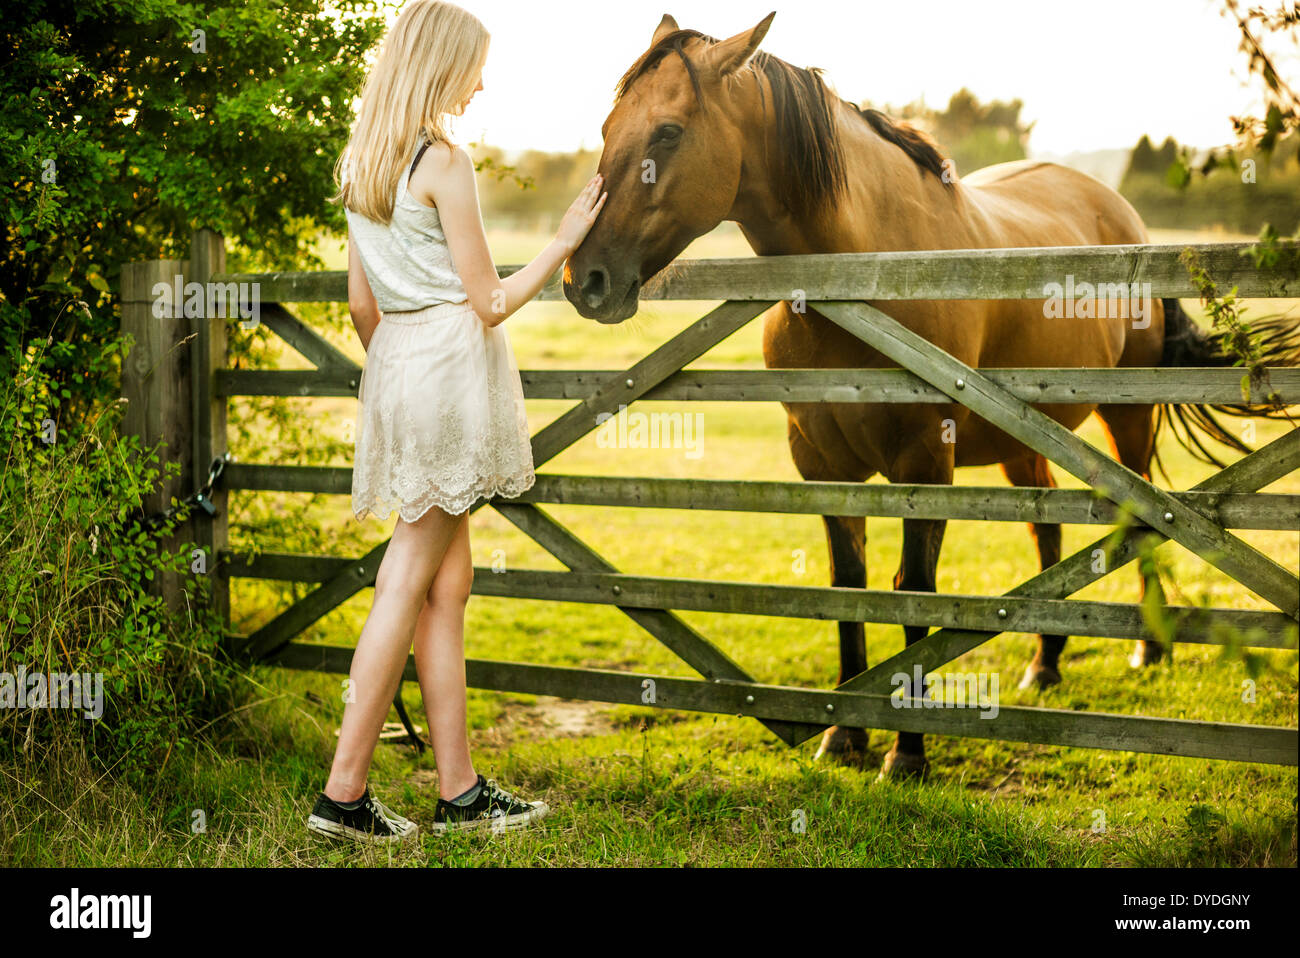 A 15 year old girl with a horse. - Stock Image